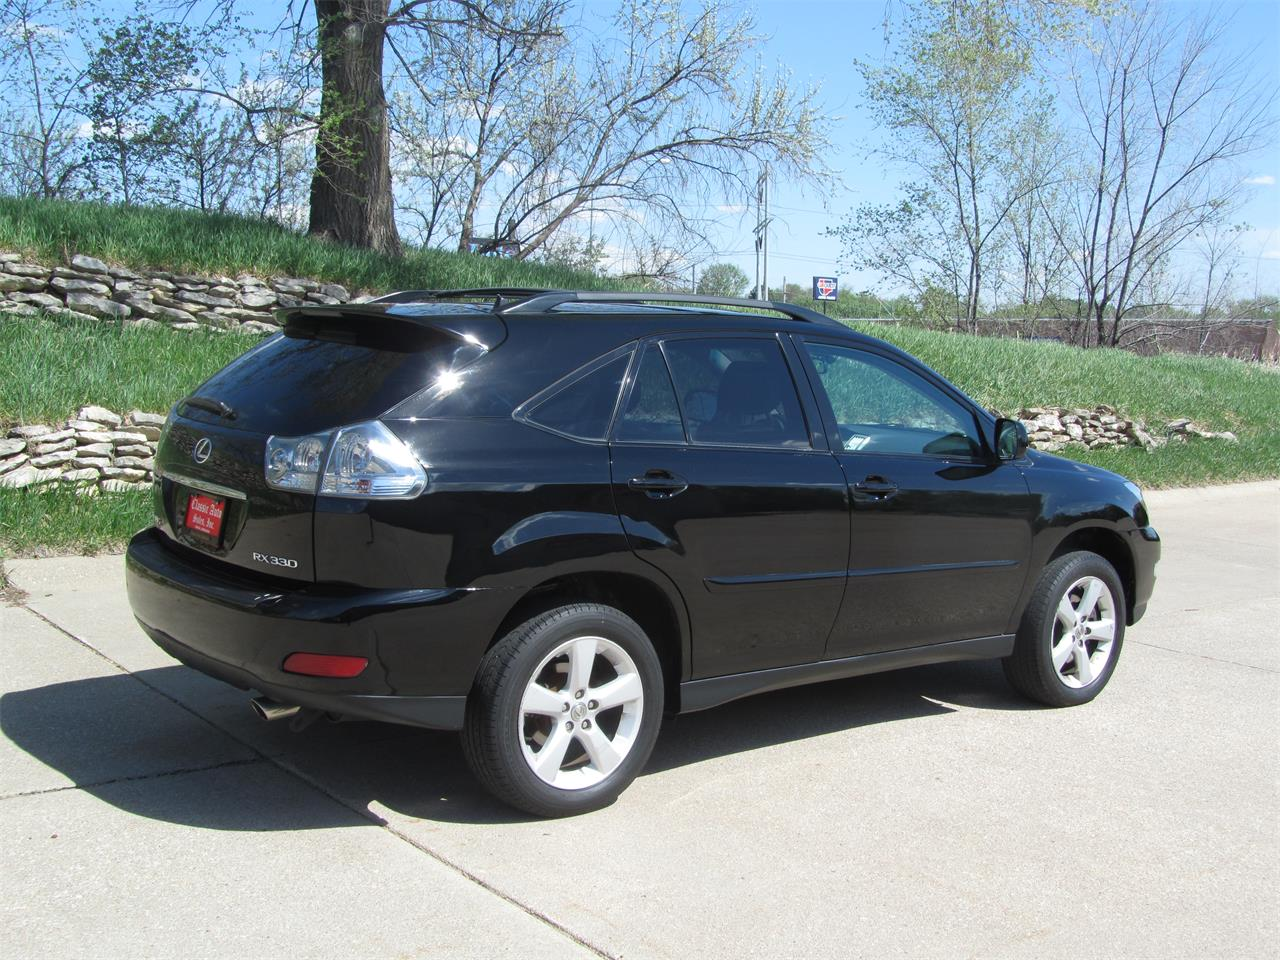 Large Picture of 2005 Lexus RX330 located in Omaha Nebraska - $14,900.00 Offered by Classic Auto Sales - NE2J